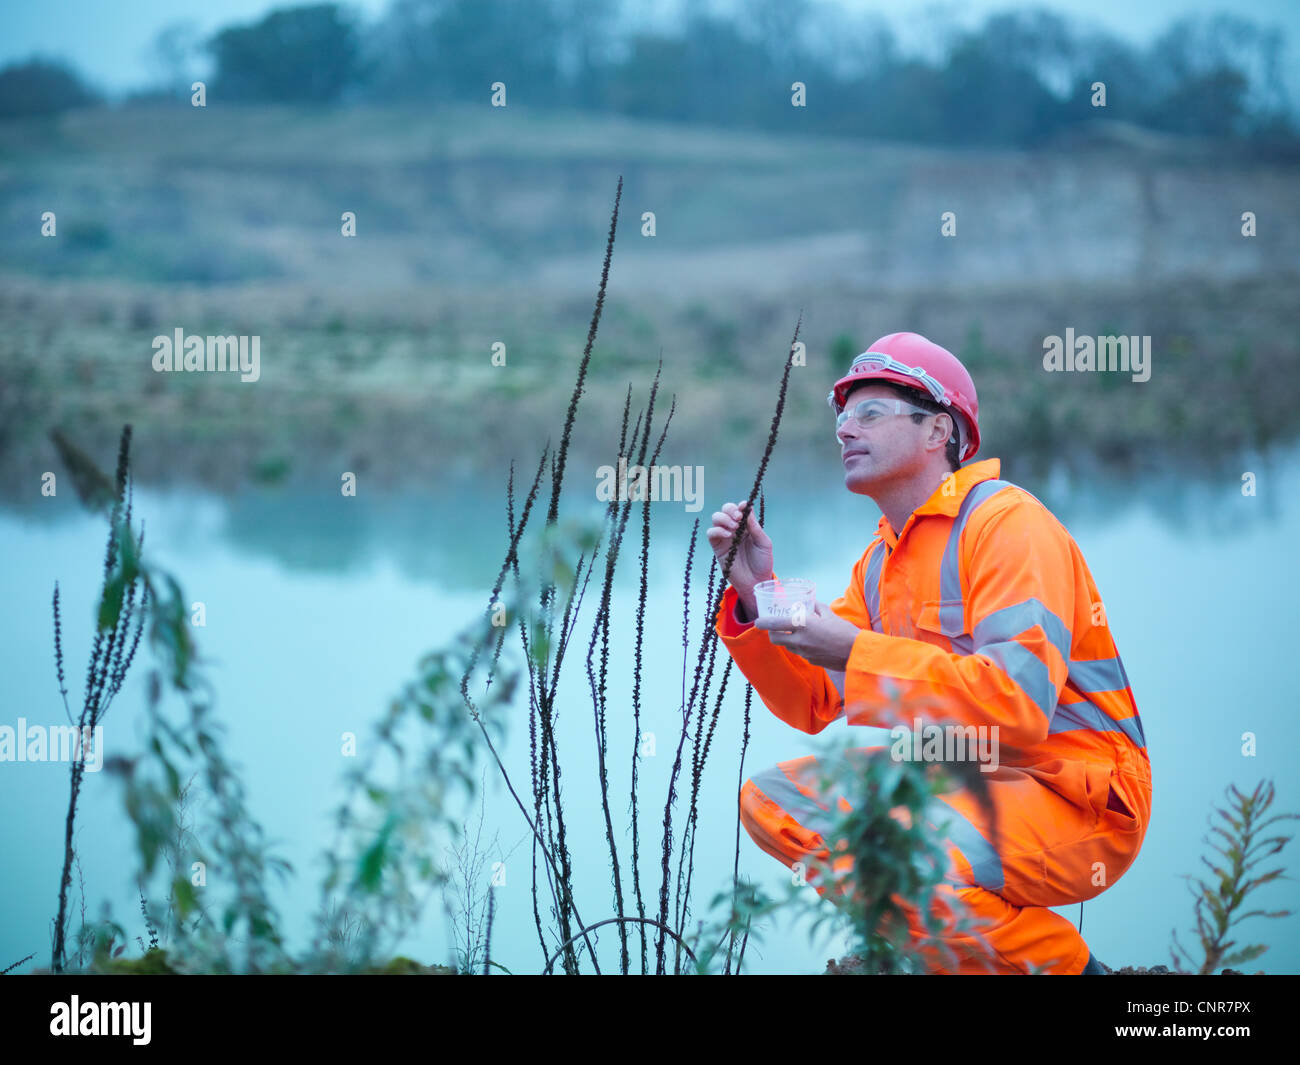 Worker examining plants in quarry - Stock Image